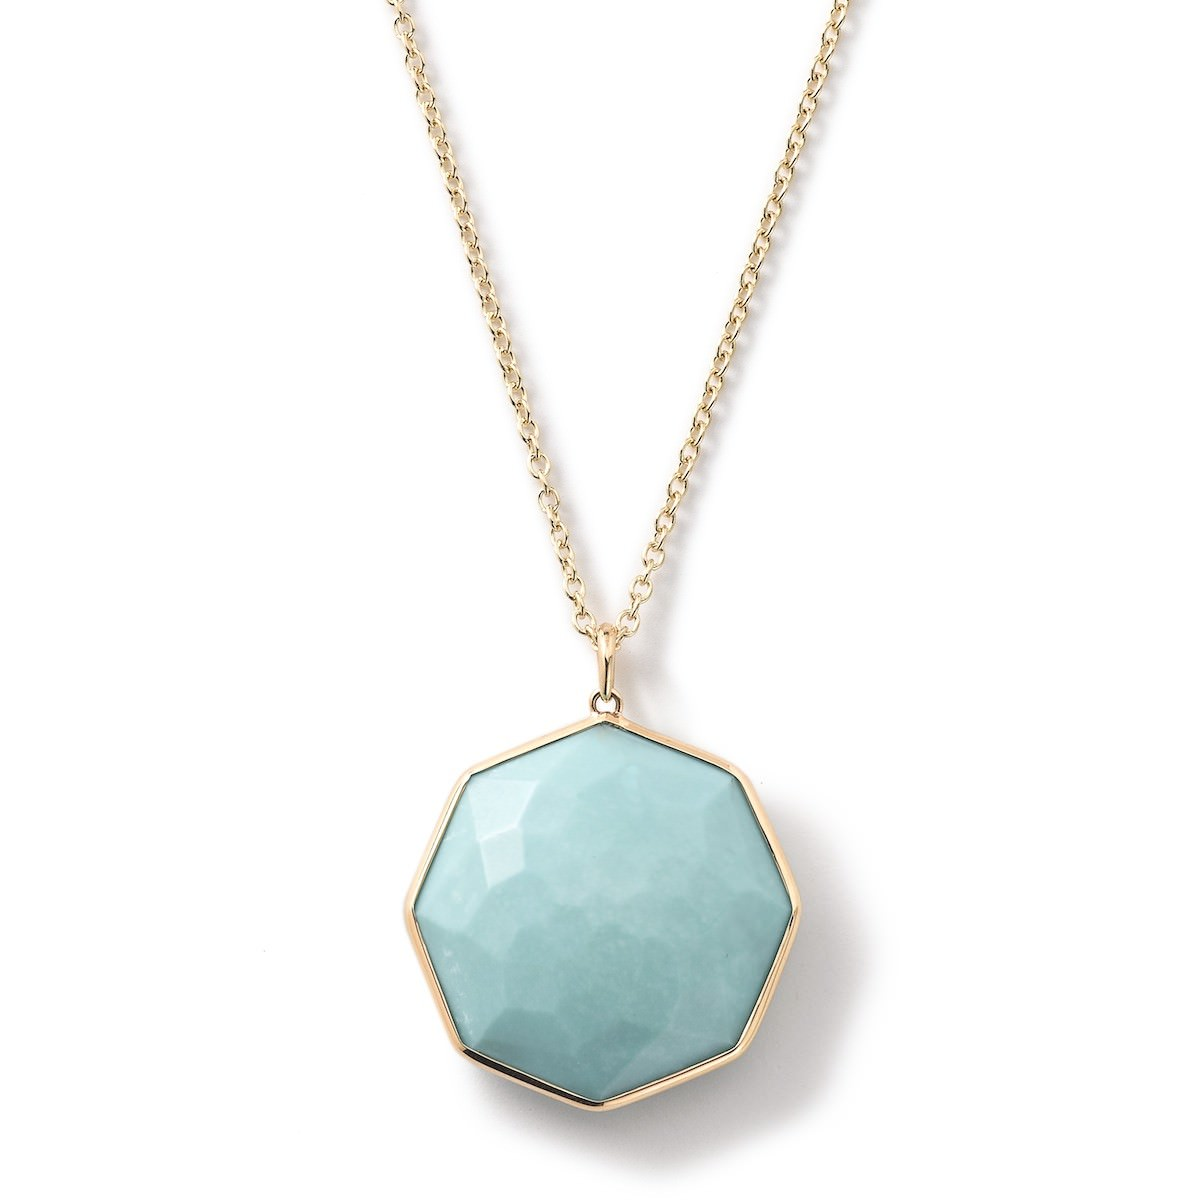 Unique Rock Octagonal Pendant Mini Necklace